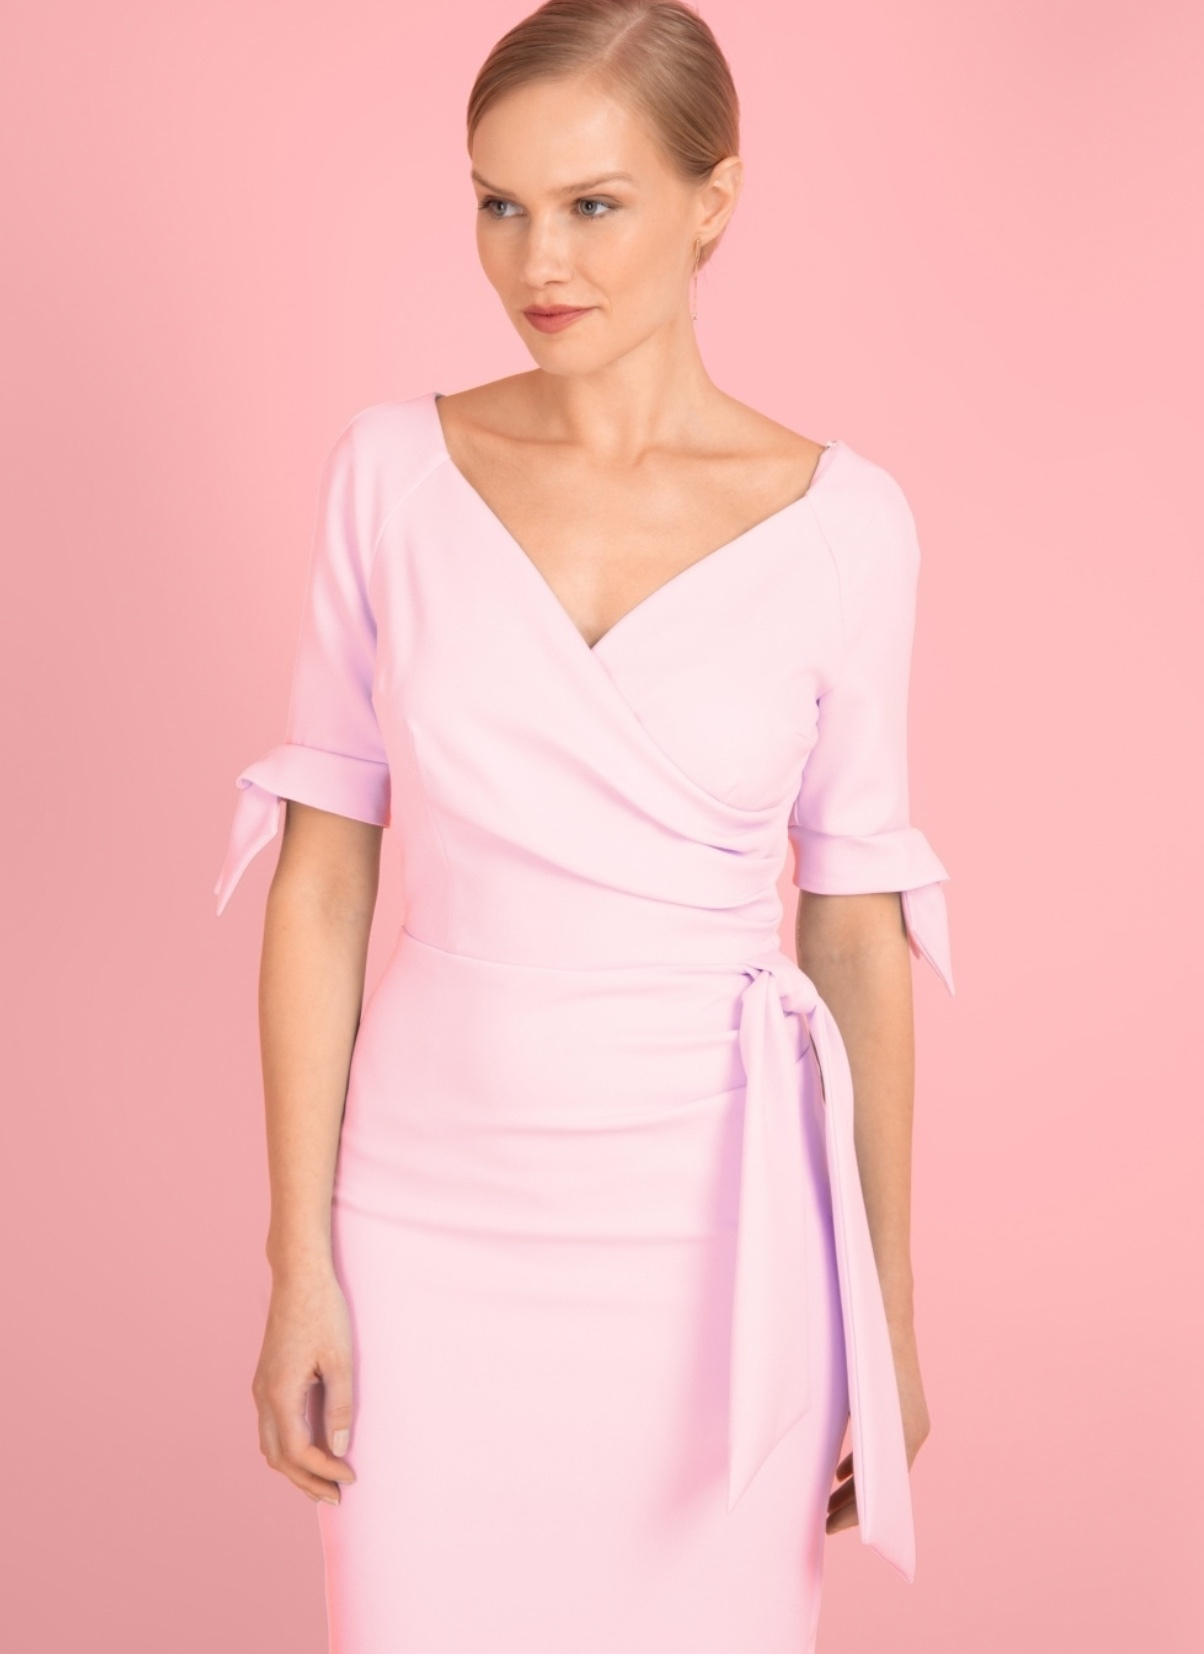 Hourglass Dress with Bows on Sleeves in Pale Pink